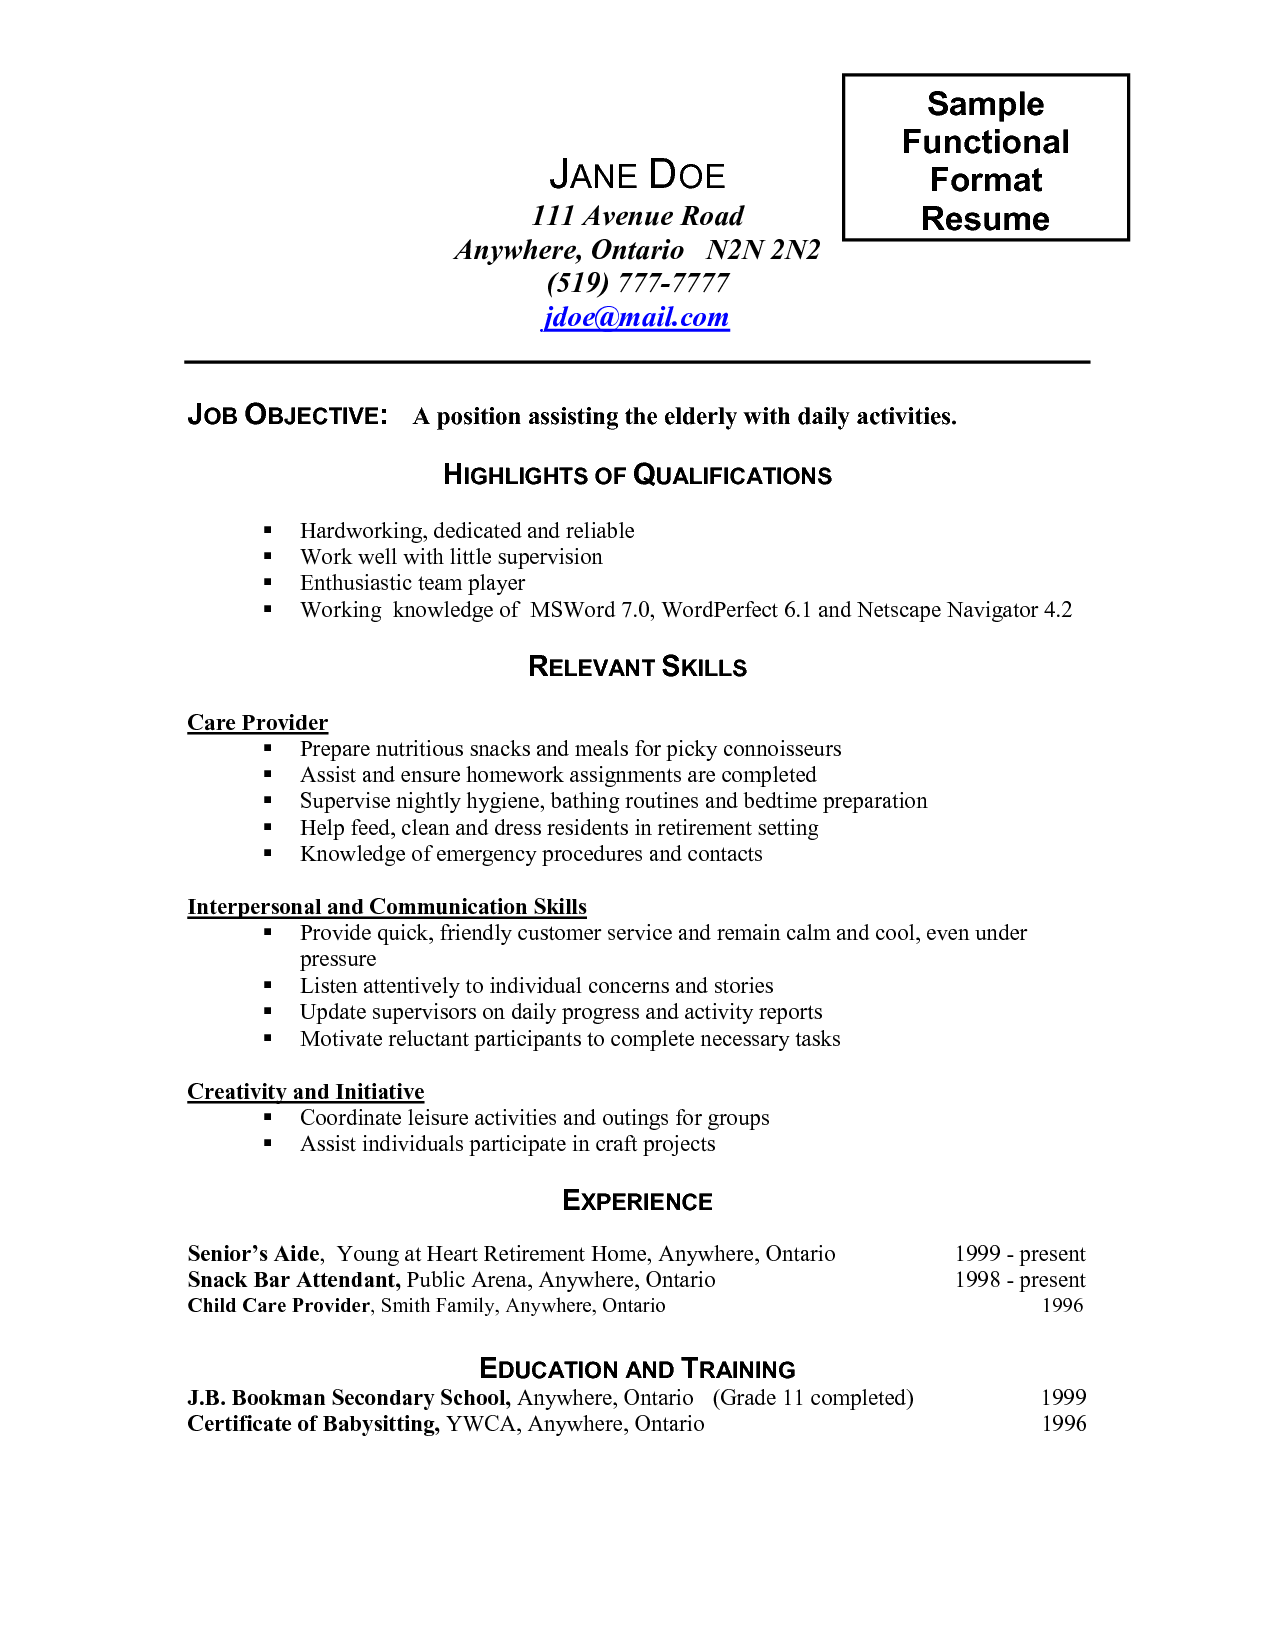 Sample Resume For Qa Analyst Qa Analyst Resumes Indeed Resume Search Indeed  Com Resume Lewesmr Resume  Resume Search Indeed